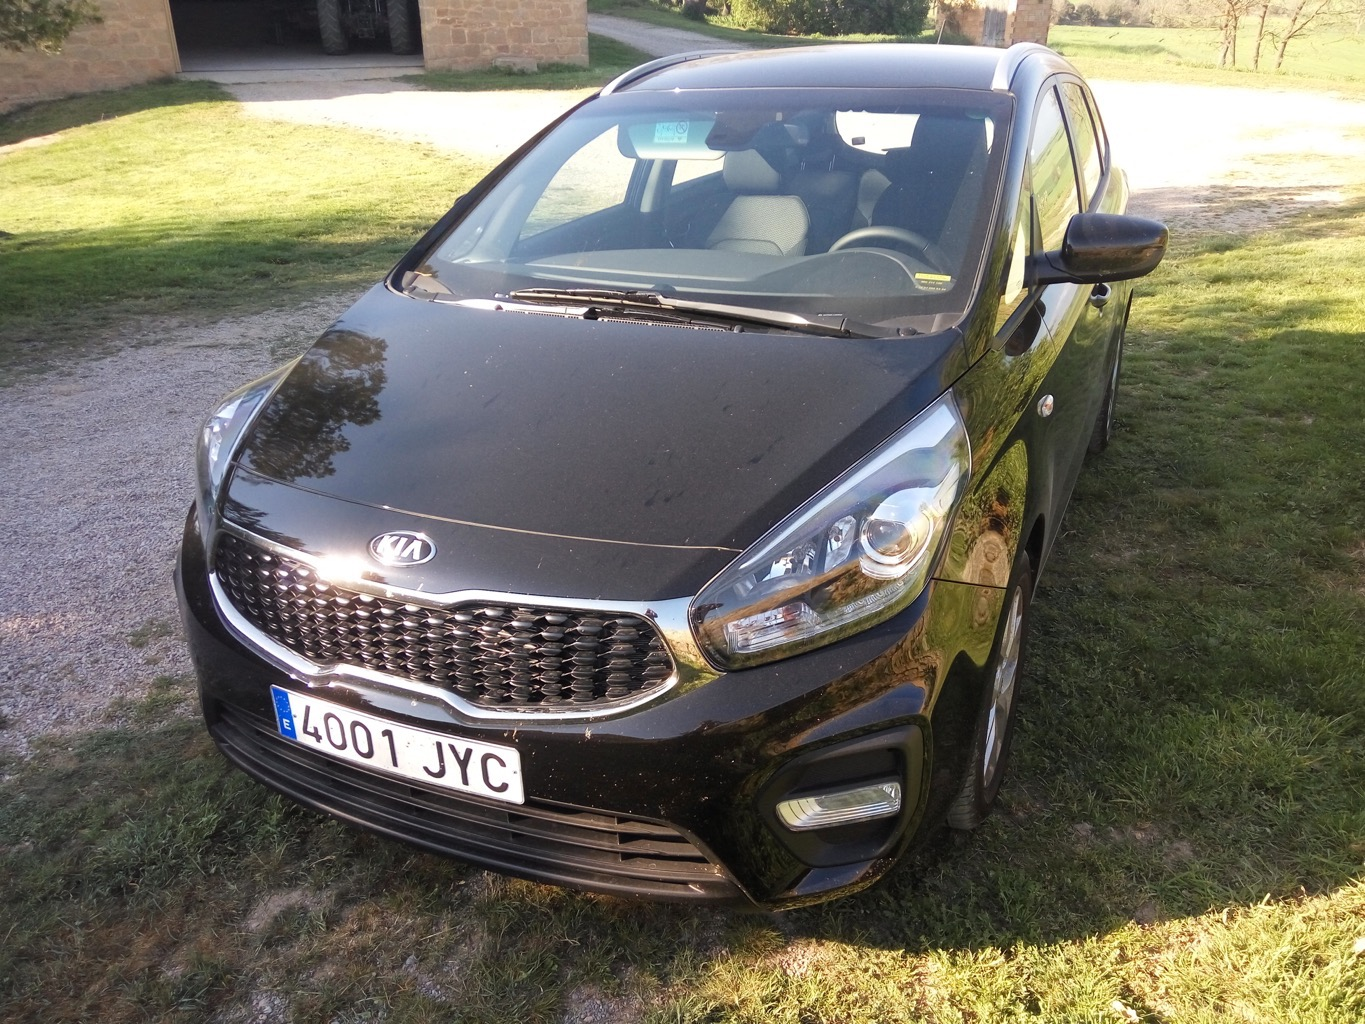 kia-carens-rockinchiclifestyle-motor-1